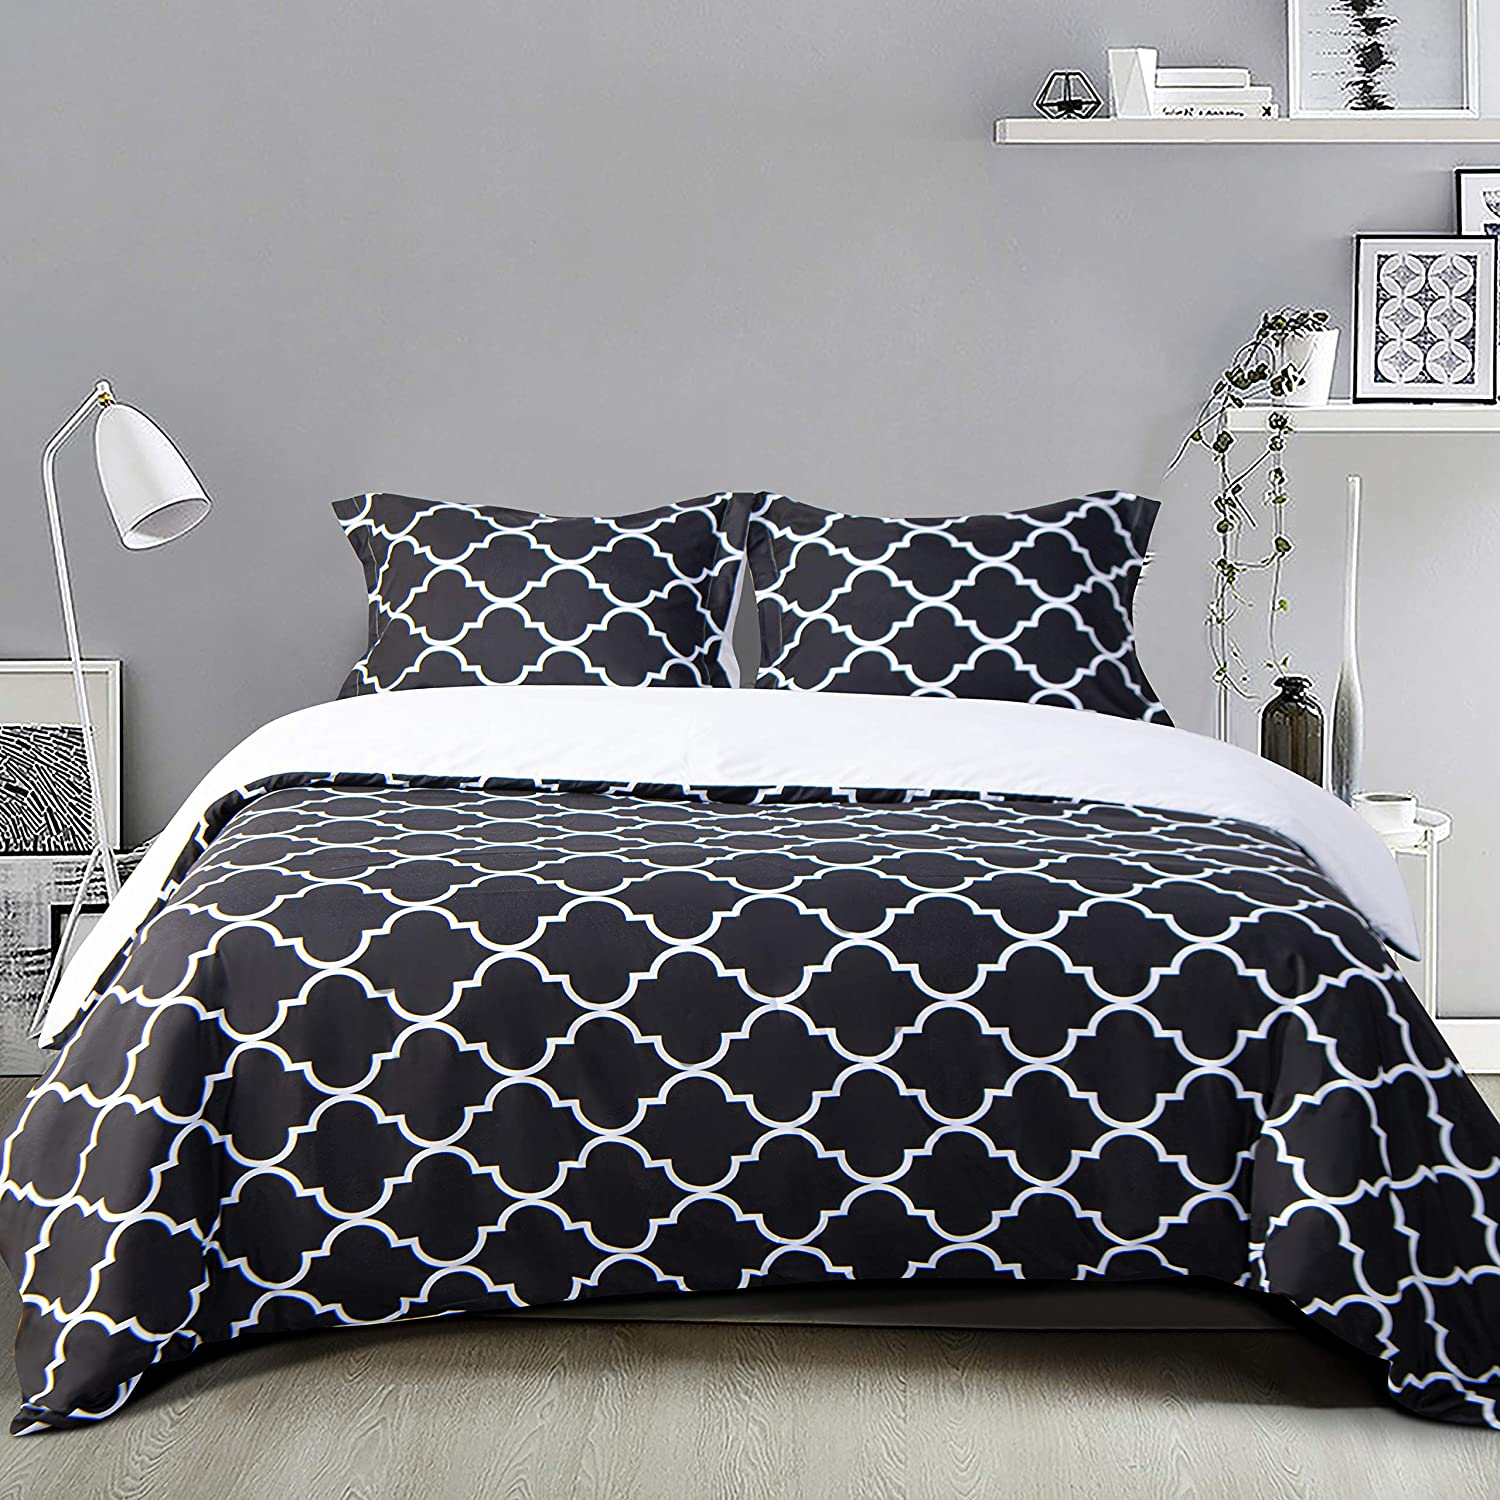 NTBAY Microfiber Twin Duvet Cover Set Soft Geome 2 Ultra Sales for sale Max 43% OFF Pieces